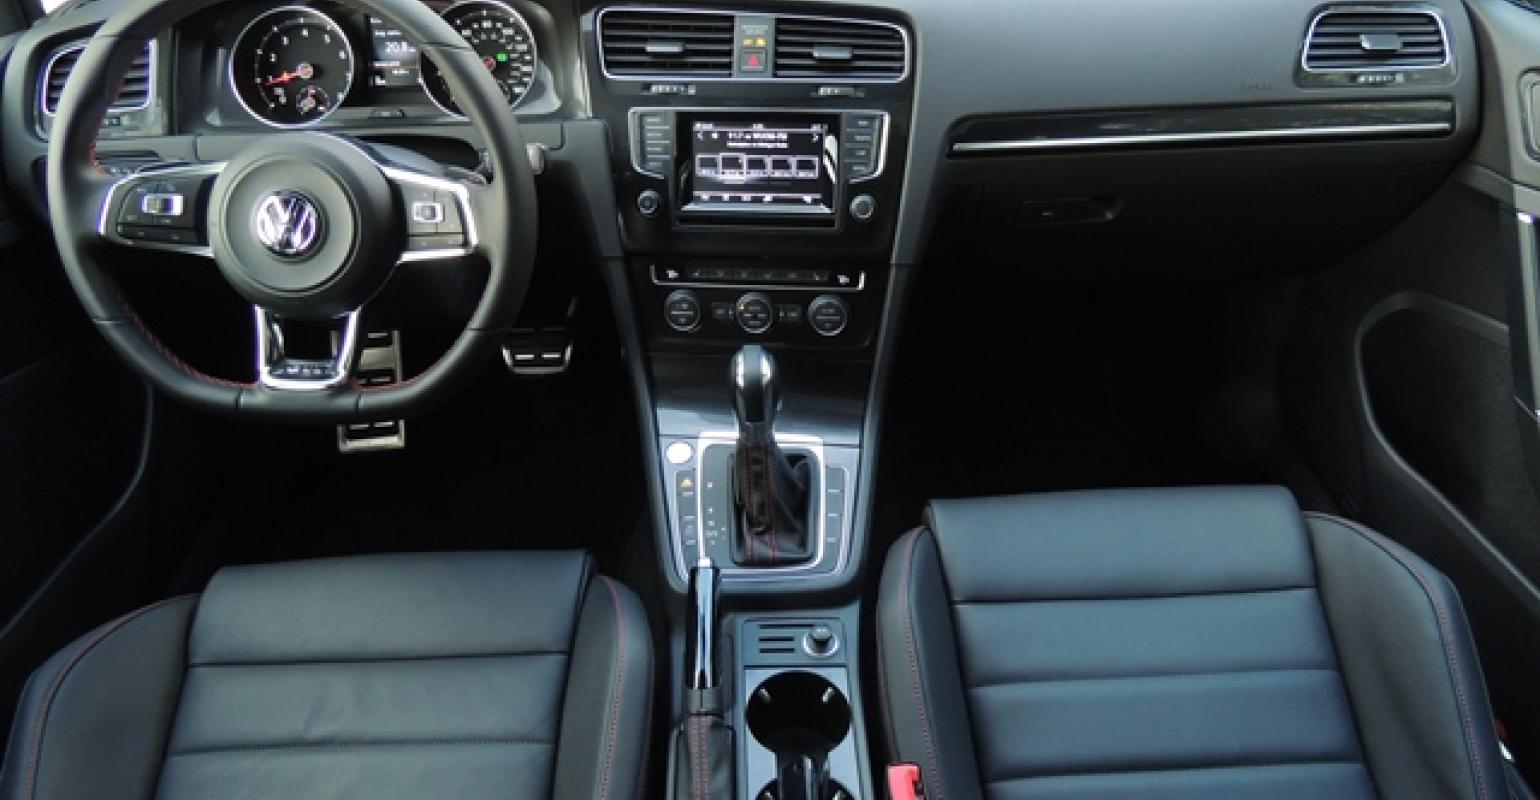 Elegant Sporty And Pleasant To The Eye The 3915 VW GTI39s Interior Raises  The Bar In